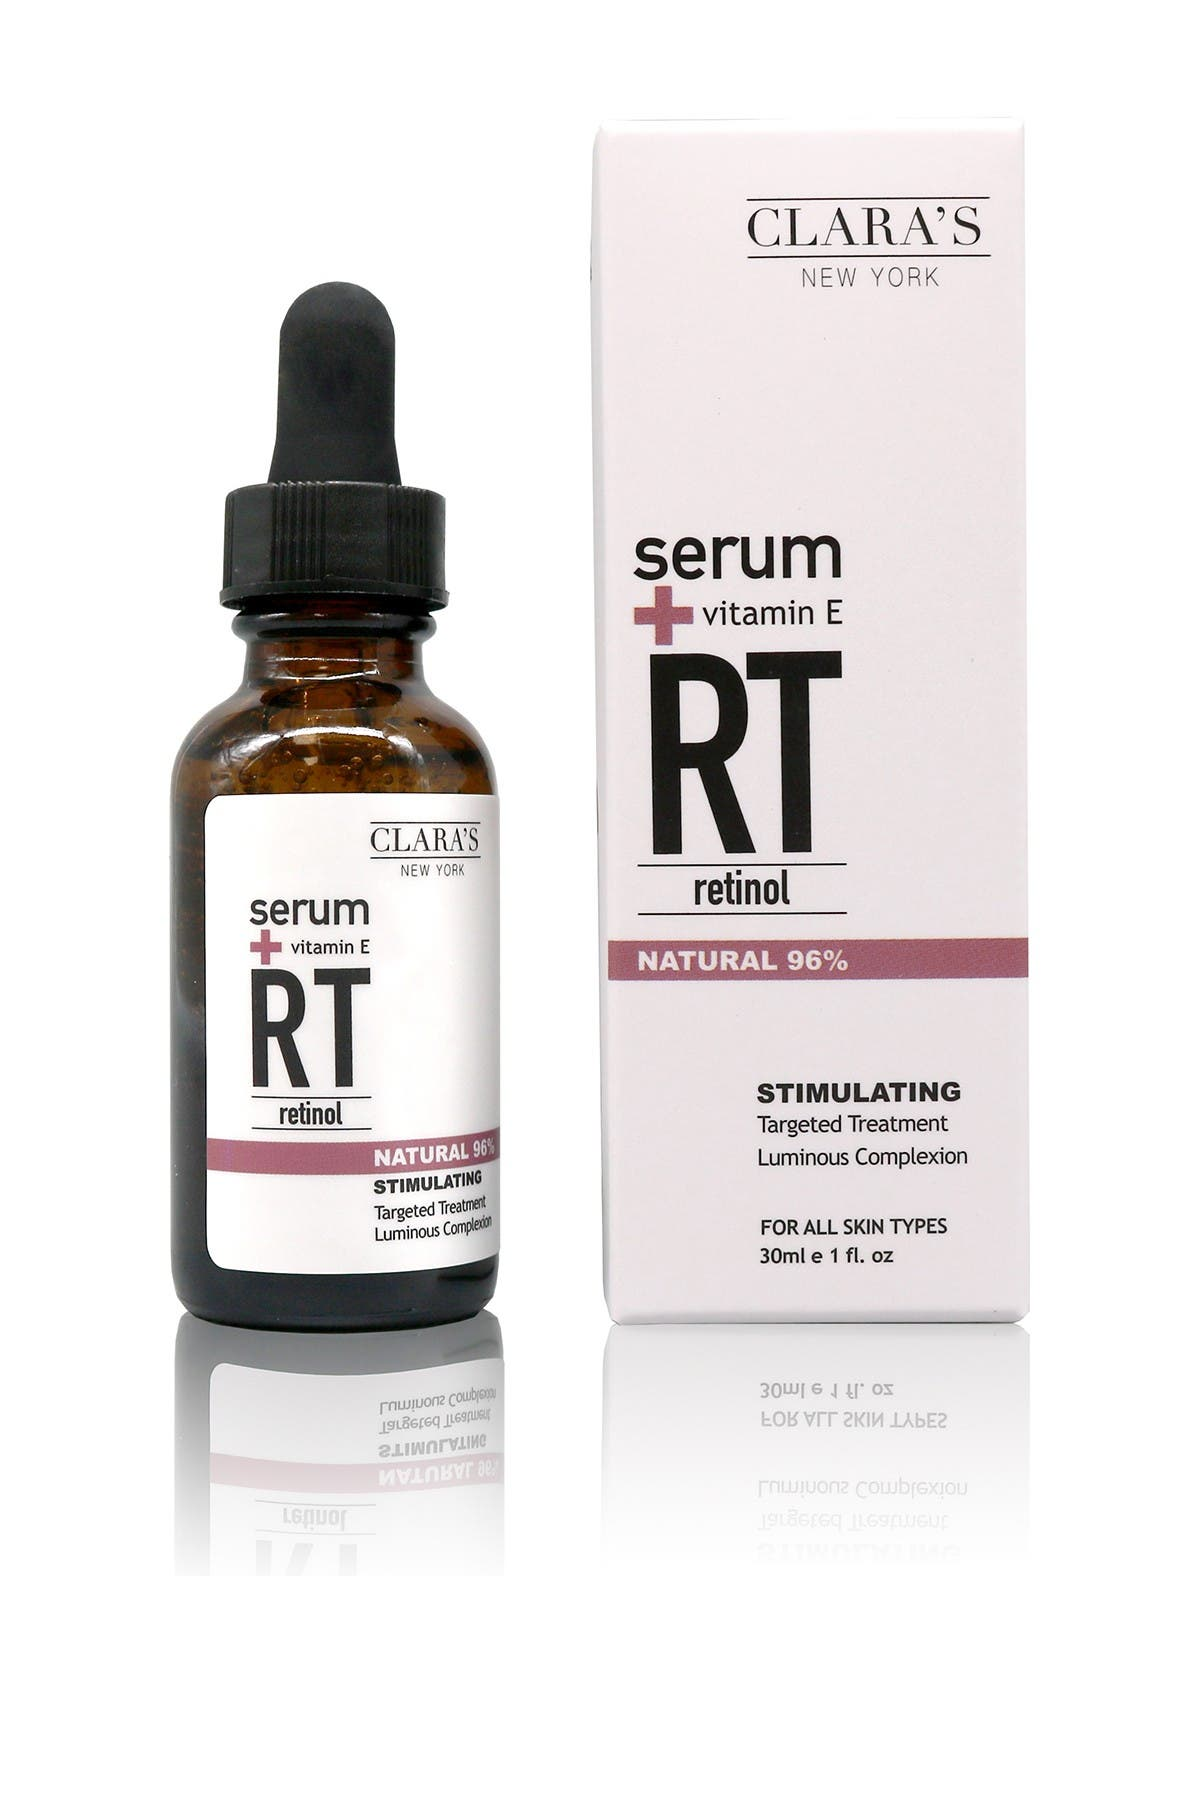 Image of Clara's New York Stimulating Retinol Serum